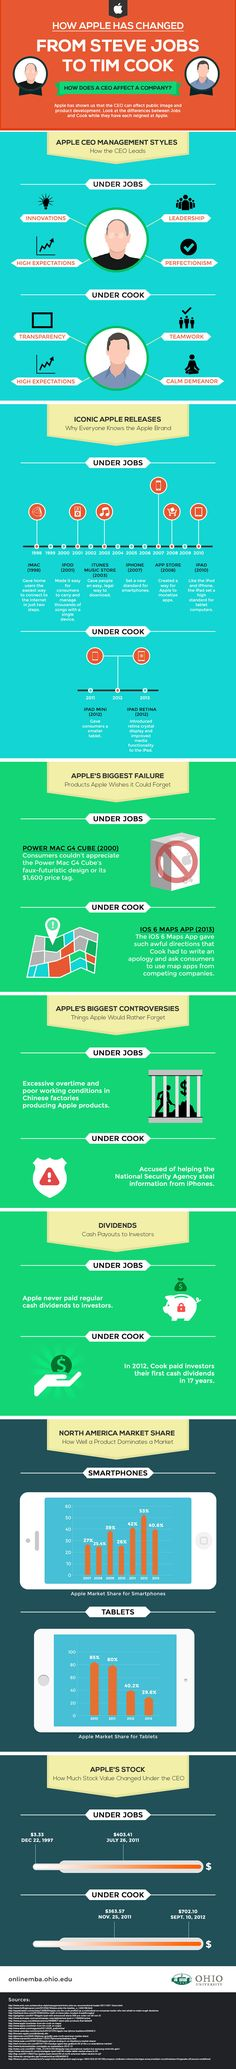 How Apple Has Changed From Steve Jobs To Tim Cook #Infographic #